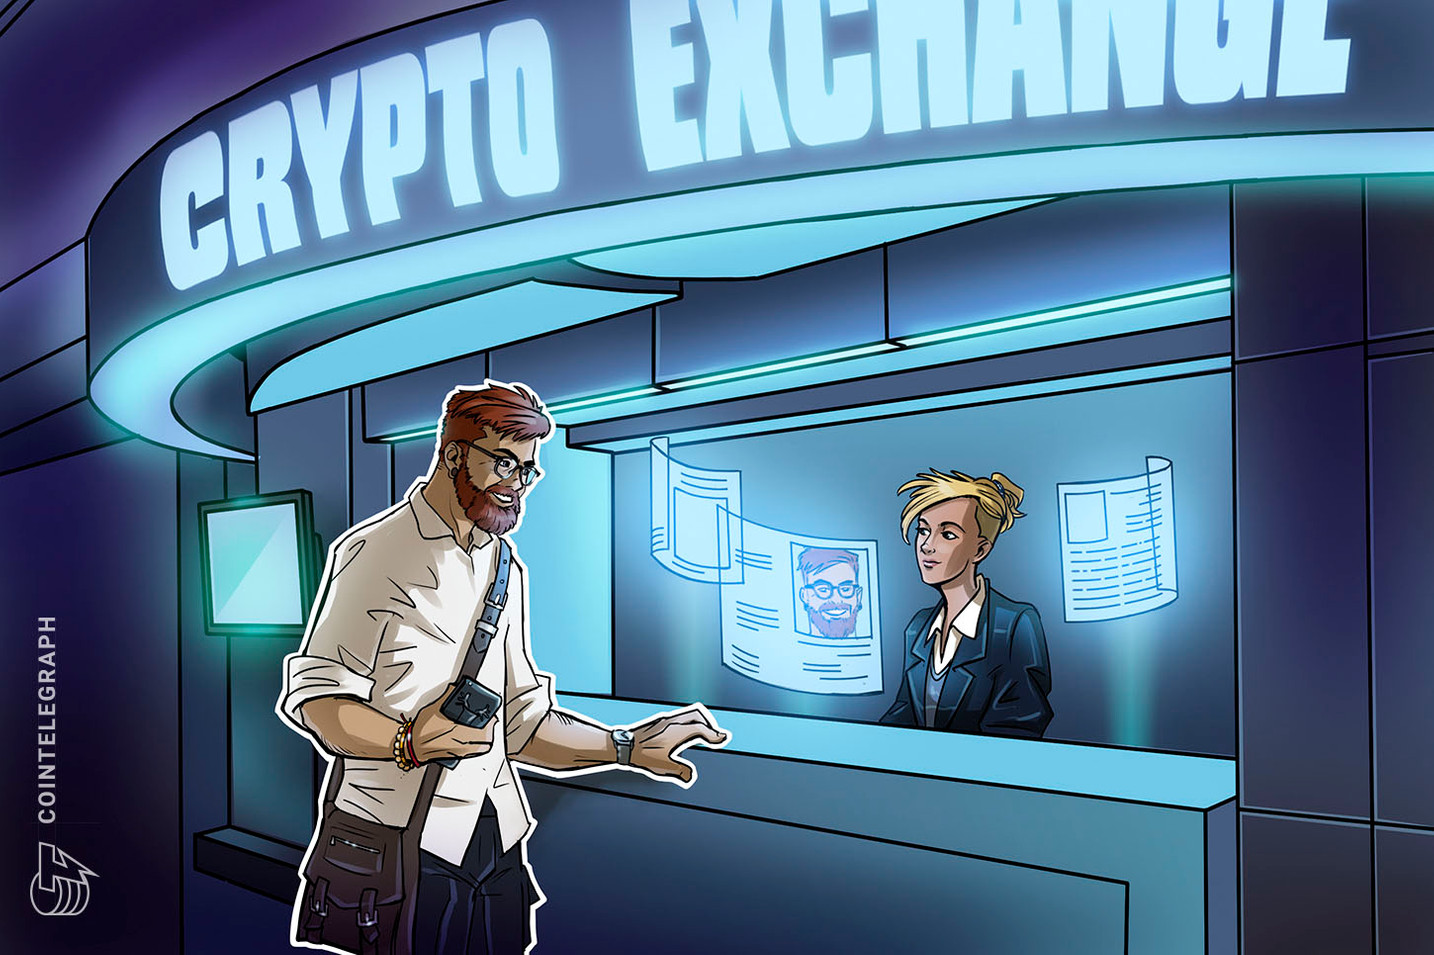 Bybit crypto exchange to impose KYC rules